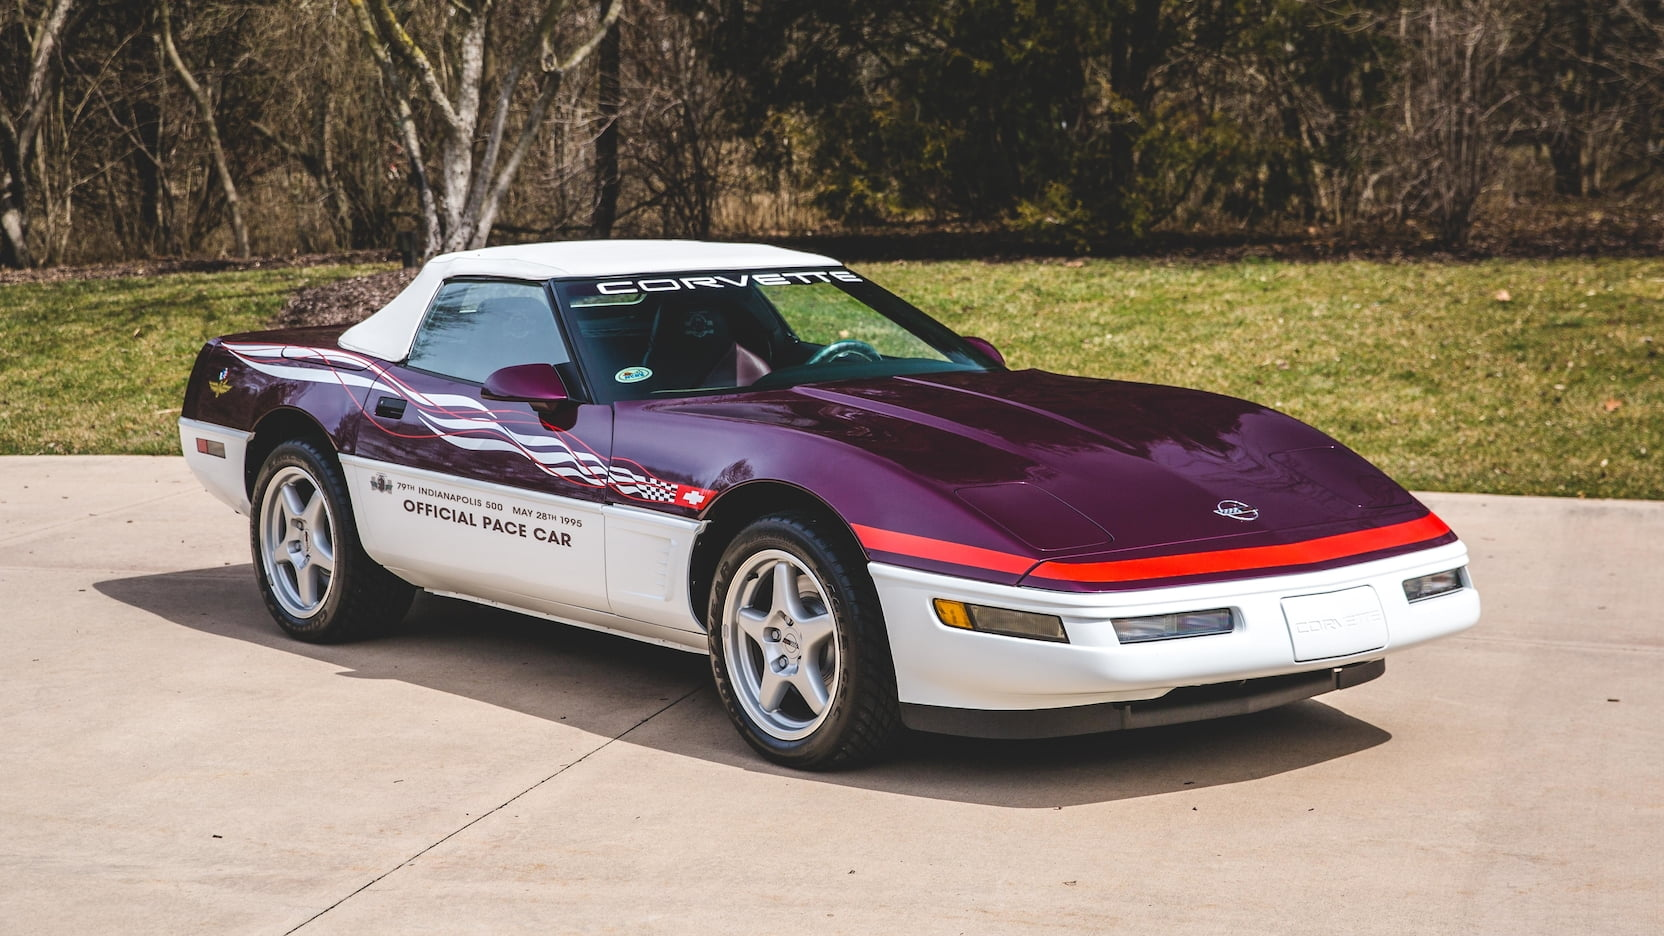 1995 Chevrolet Corvette Pace Car Edition Front 3/4